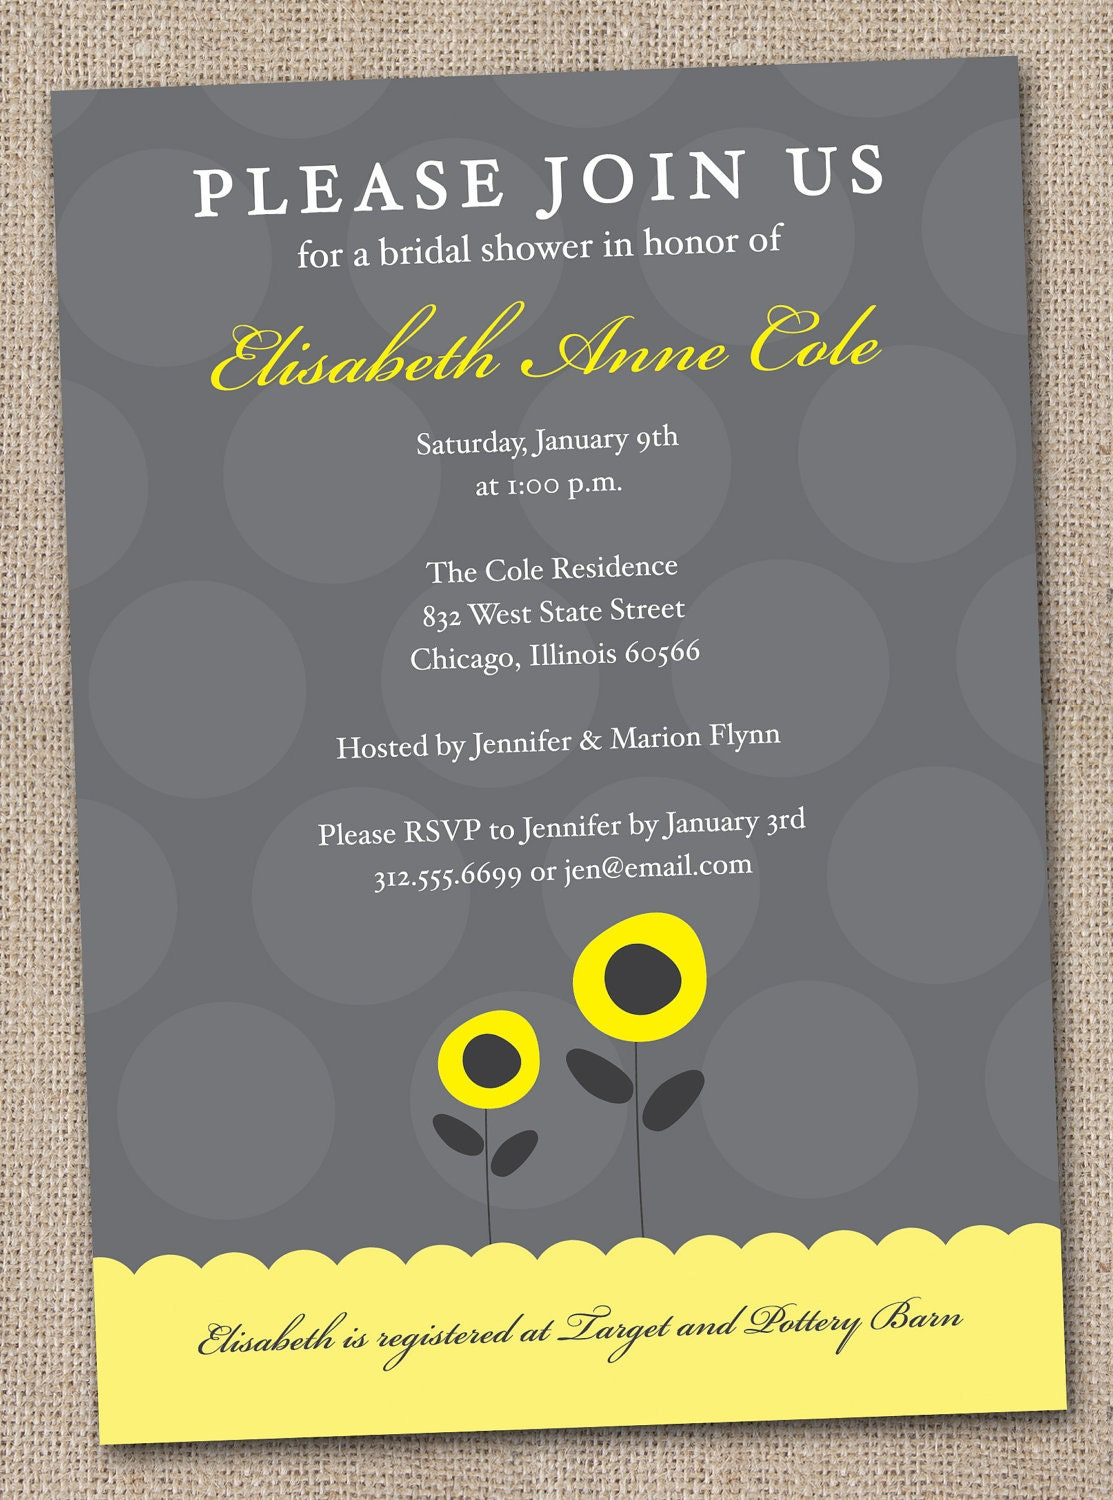 Printable Bridal Shower Invitations Grey and Yellow Poppy Flowers and Polka